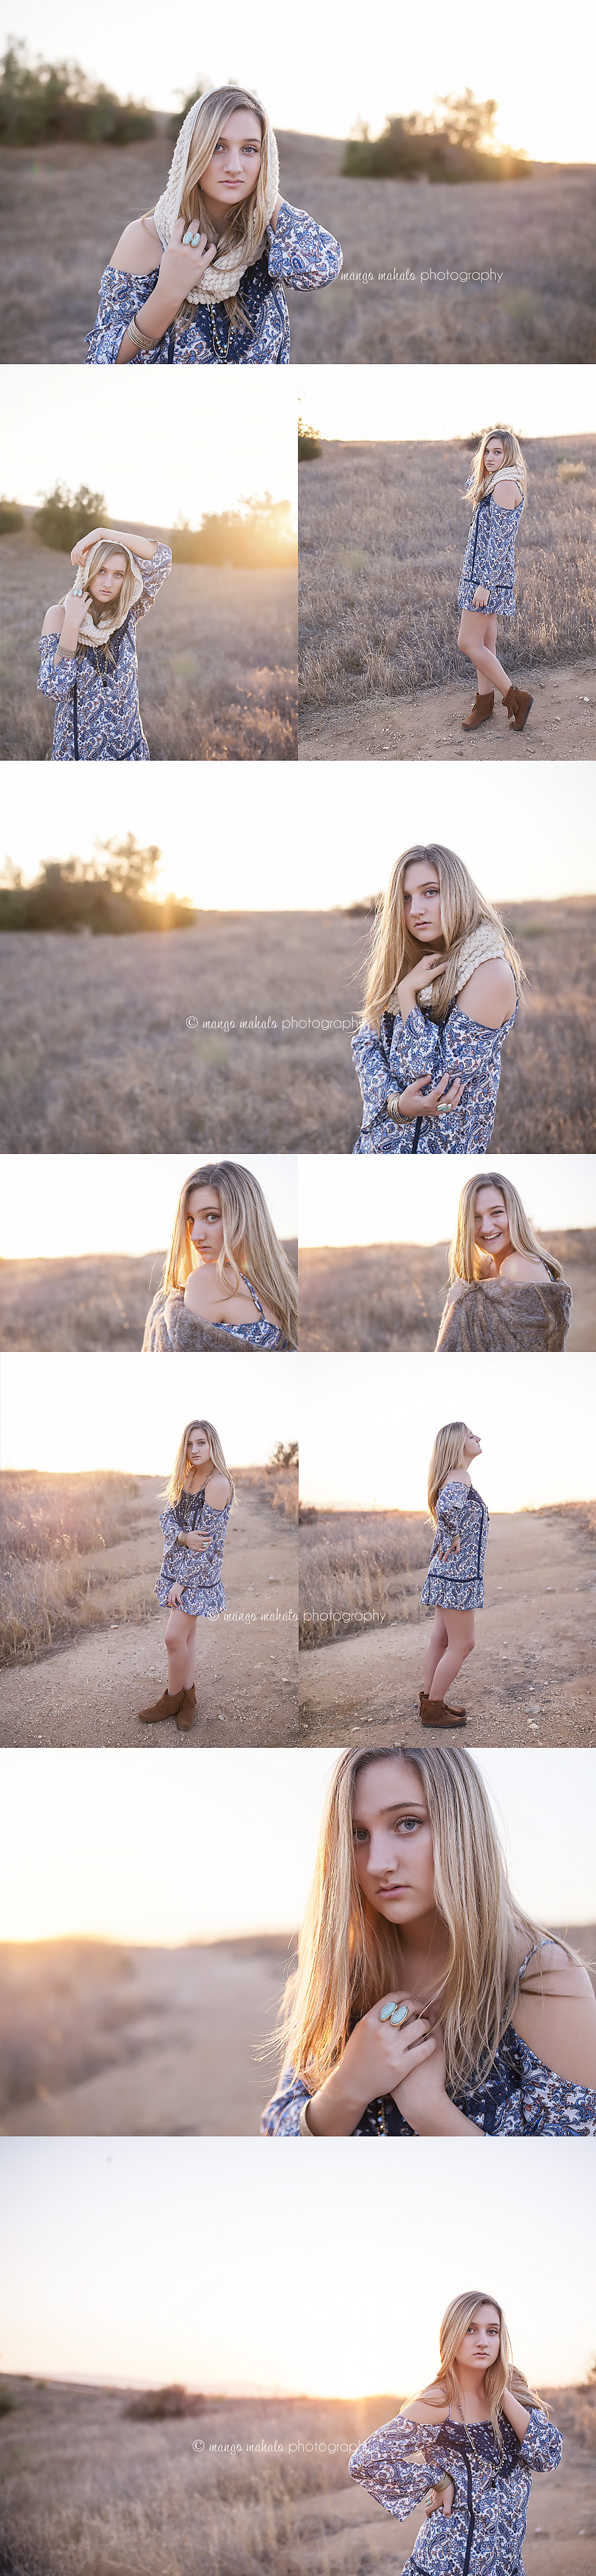 Southern California Teen Girl Sunset Field by Mango Mahalo Photography mangomahalo.com